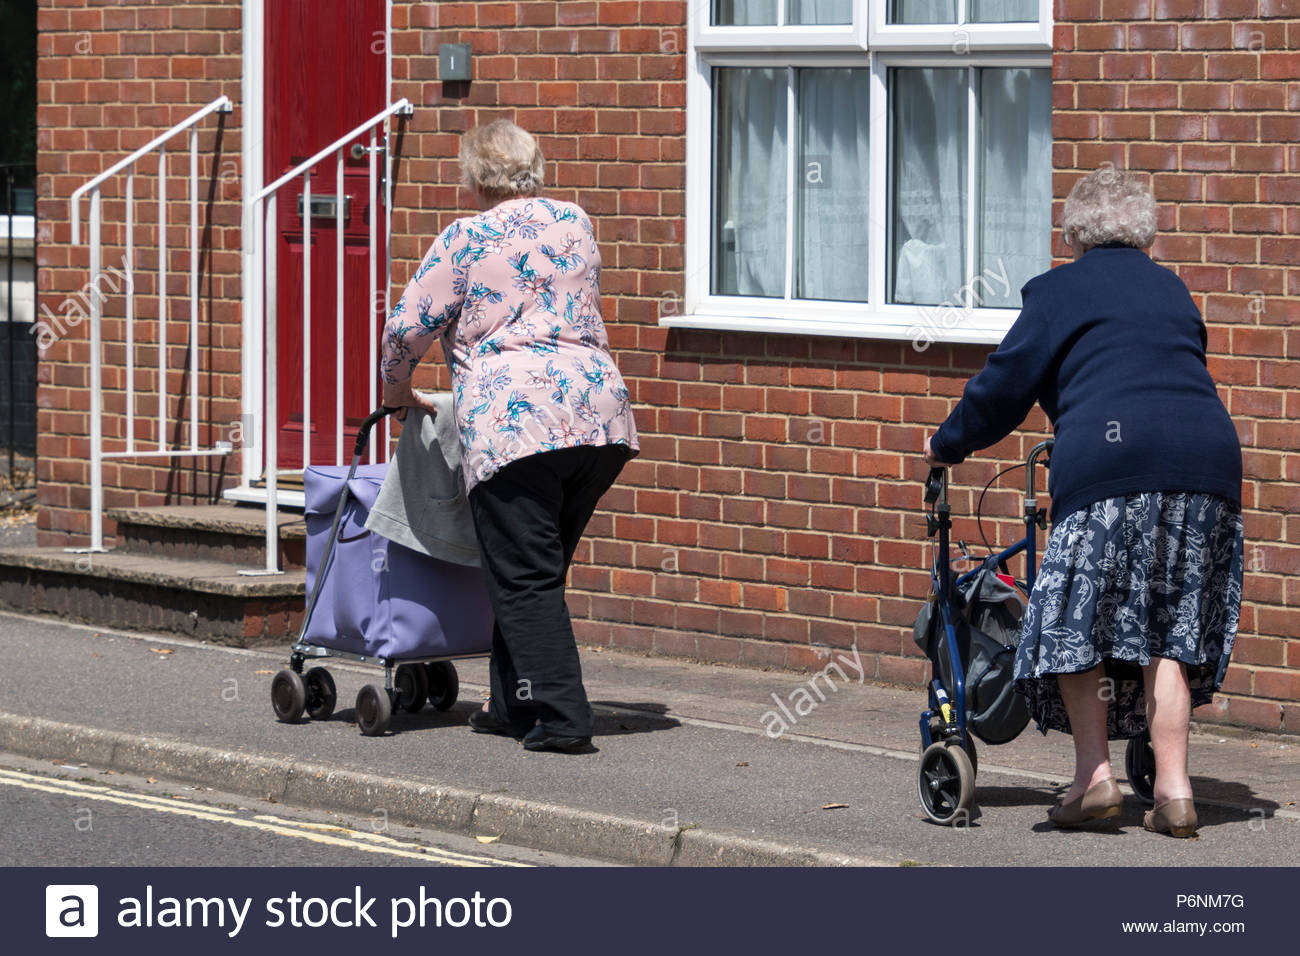 Rwo women, one with shopping trolley on with stroller along the street, Romsey, Hampshire, England, UK - Stock Image